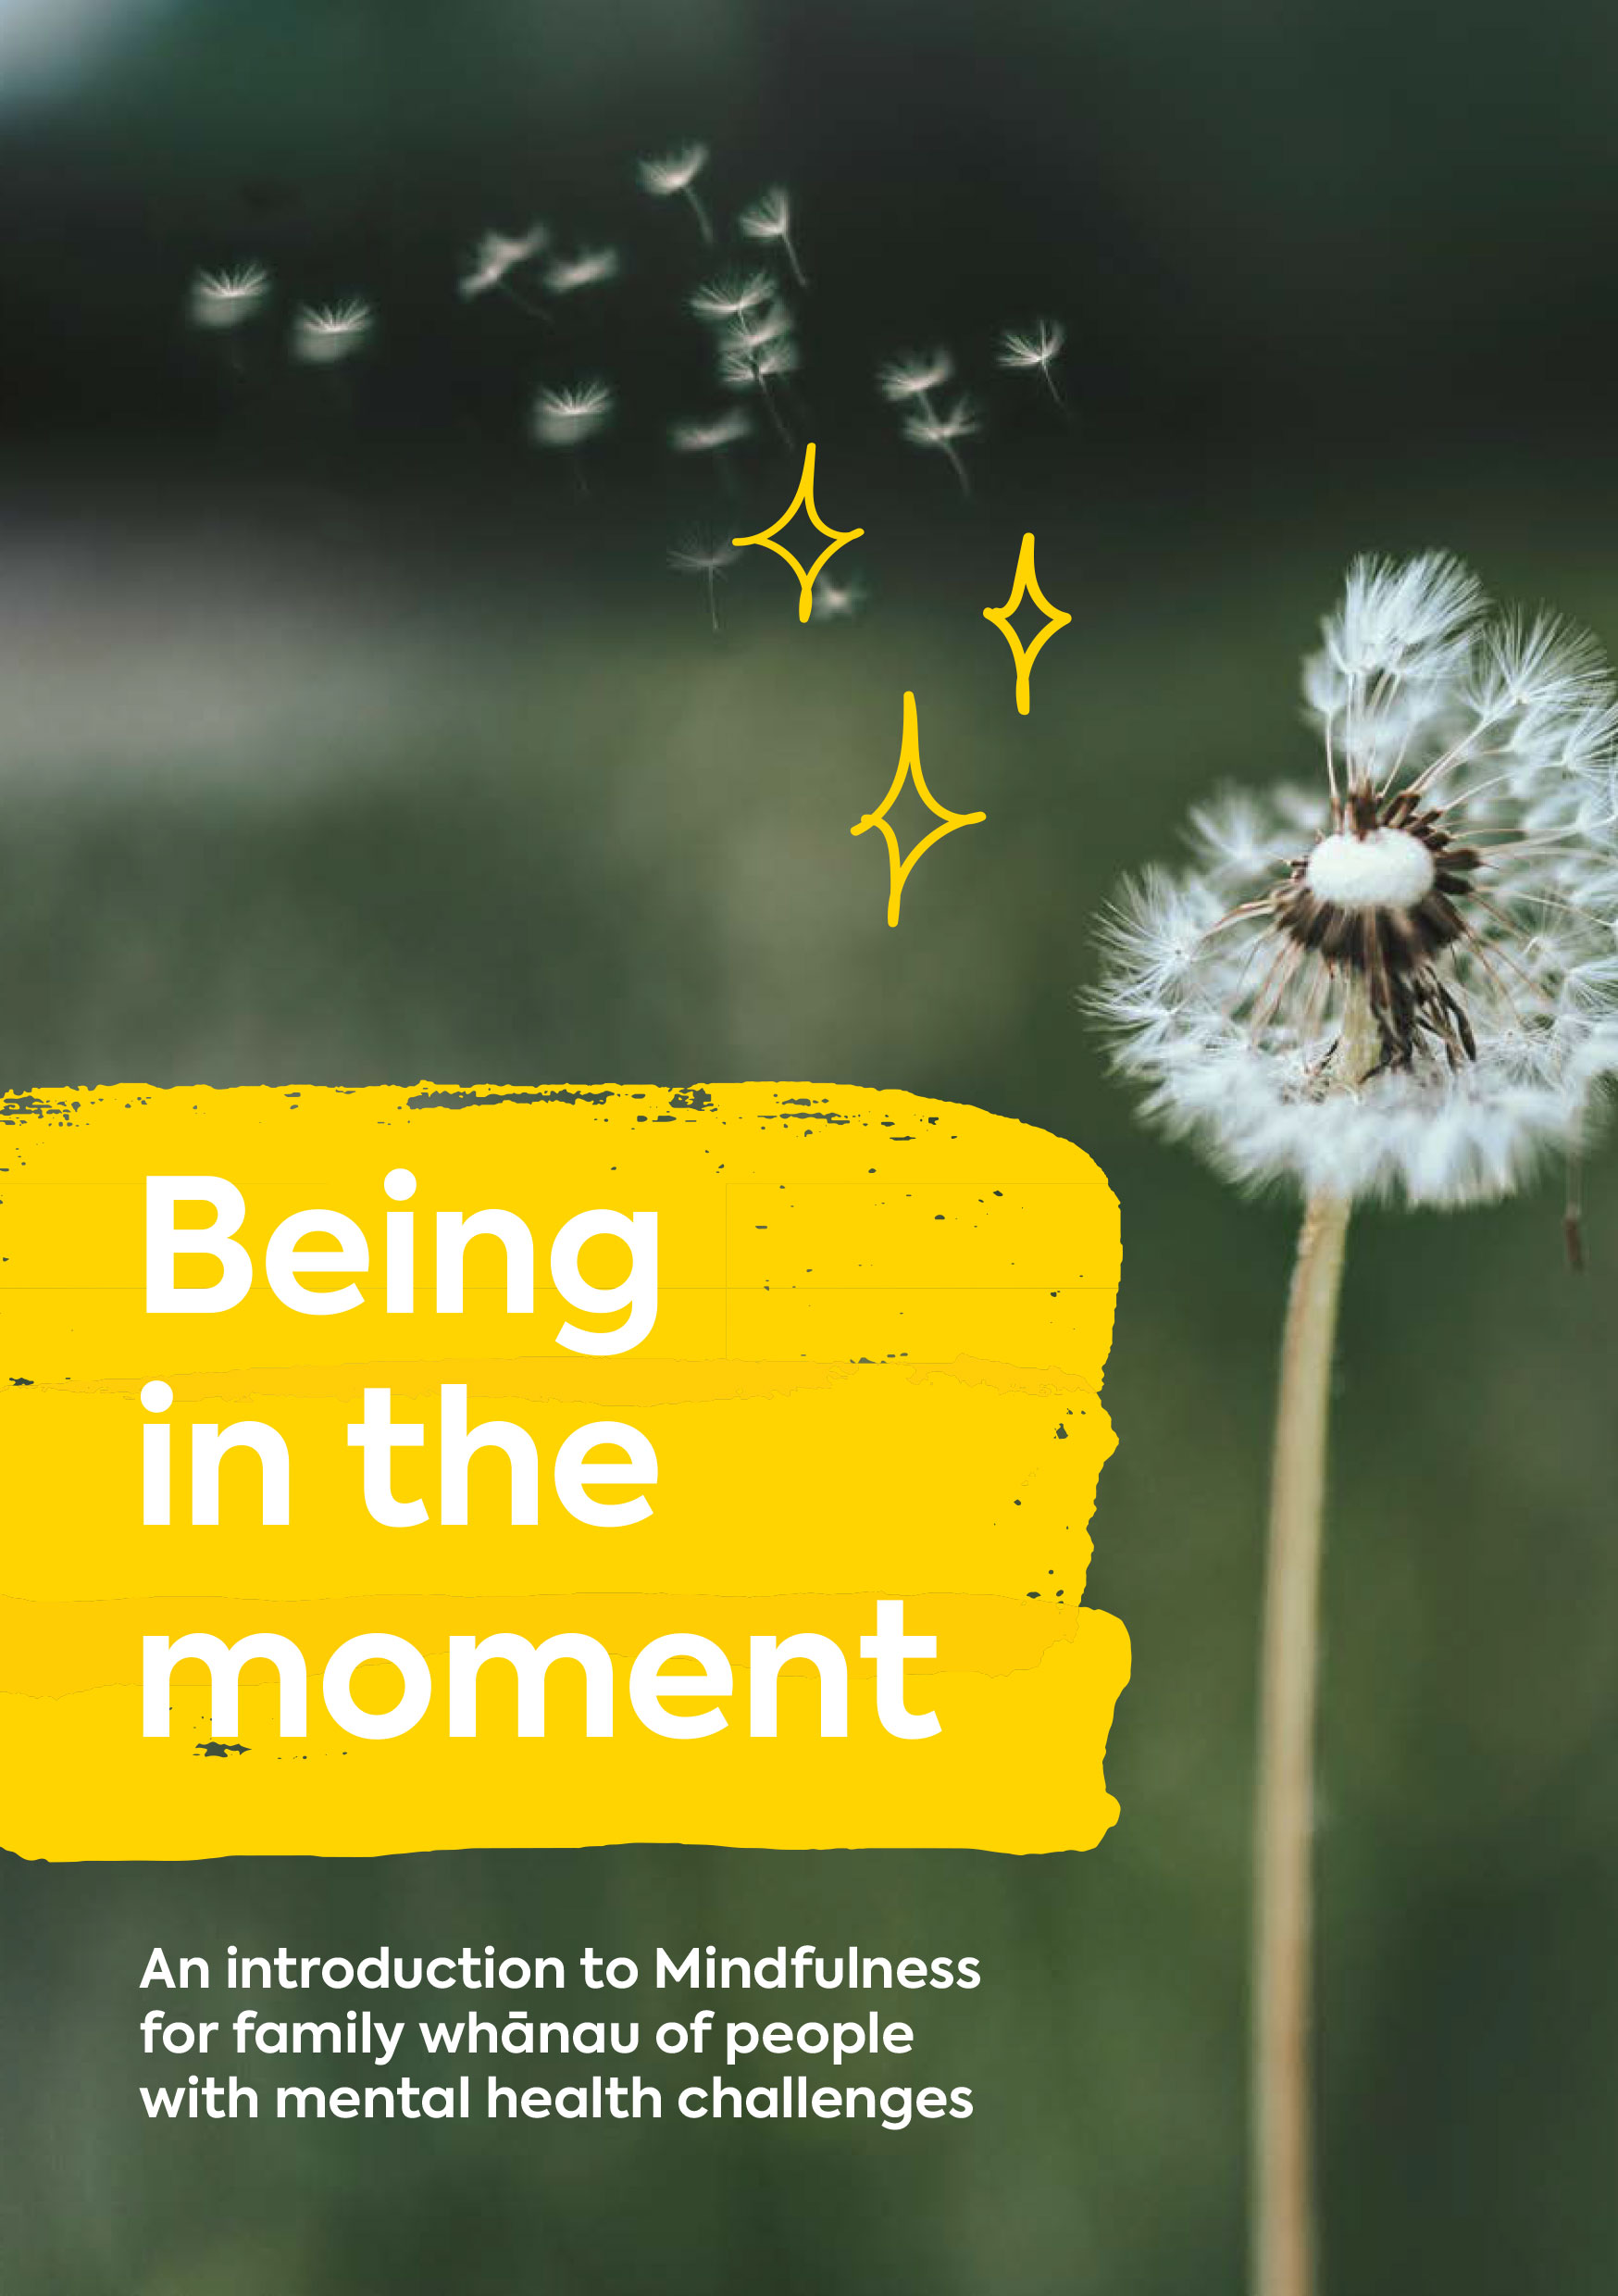 Being in the moment: An introduction to mindfulness